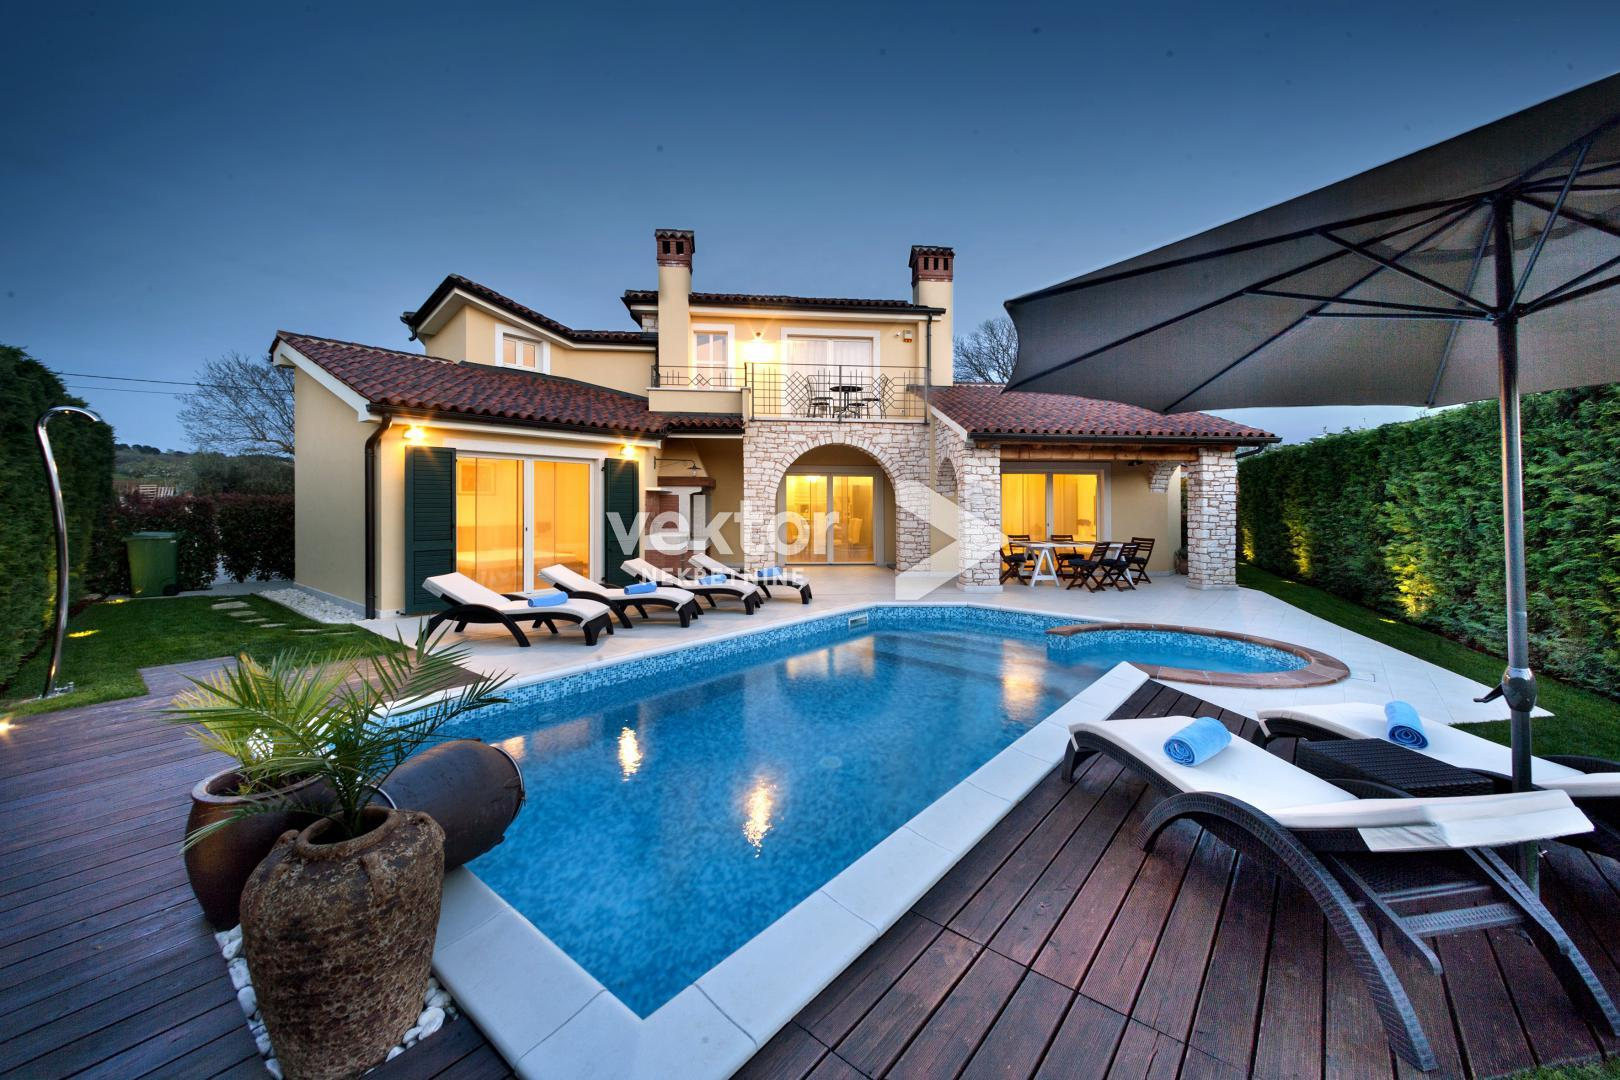 Poreč surroundings, 270 m², a house with a swimming pool